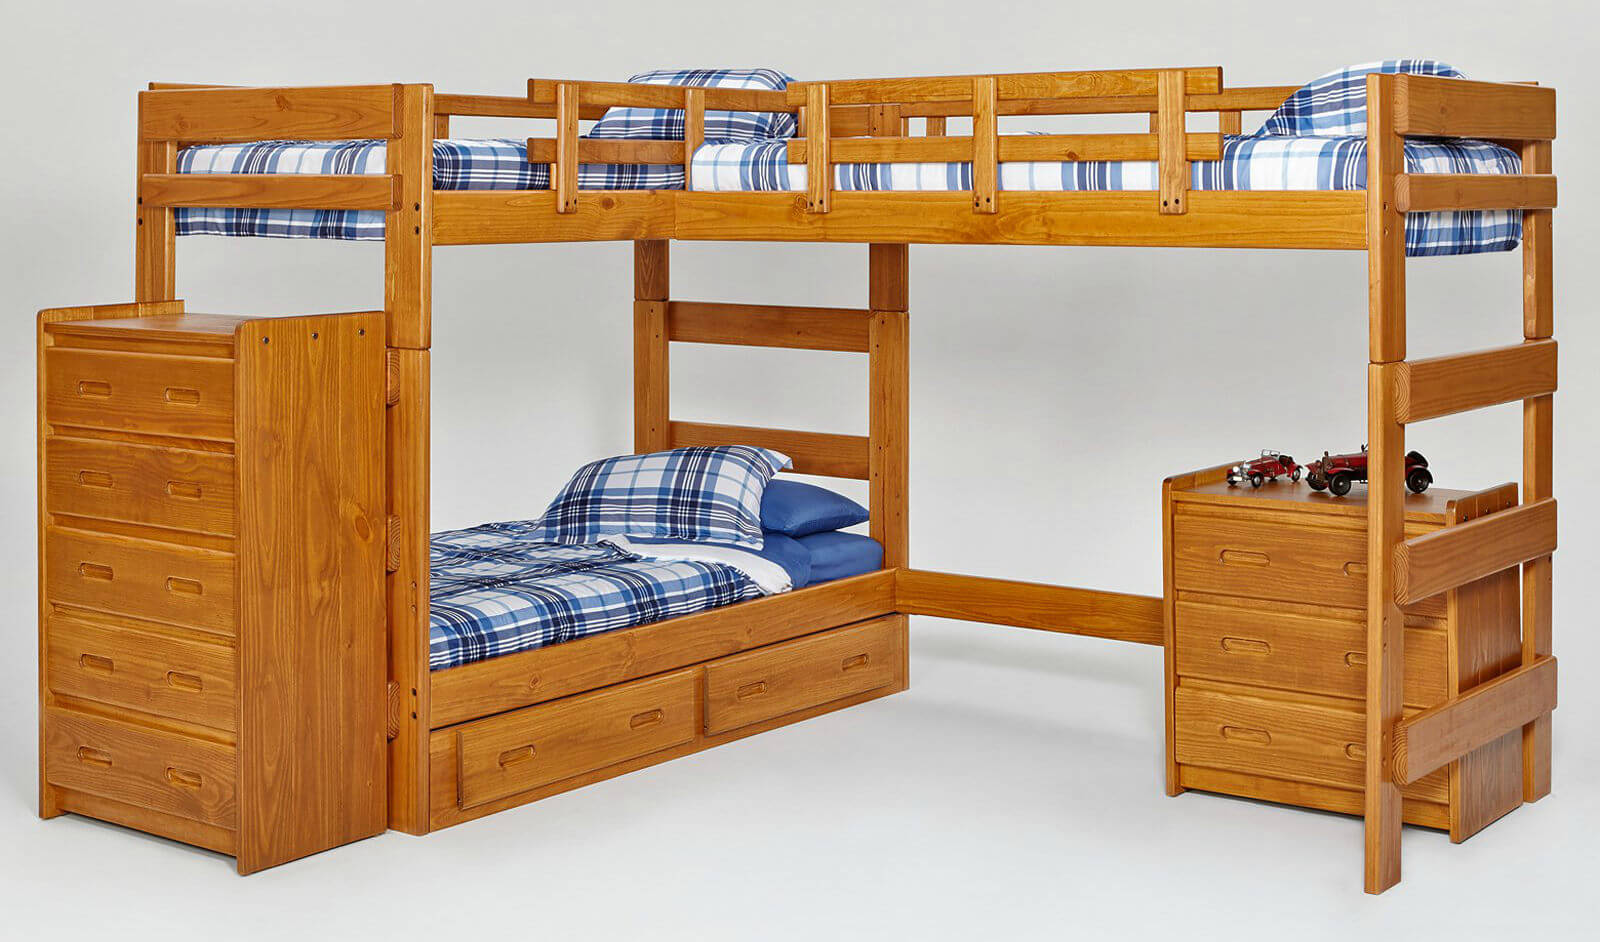 3 Twin Beds In The Space Of 1 34 Fun Girls And Boys Kid 39s Beds And Bedrooms Photos